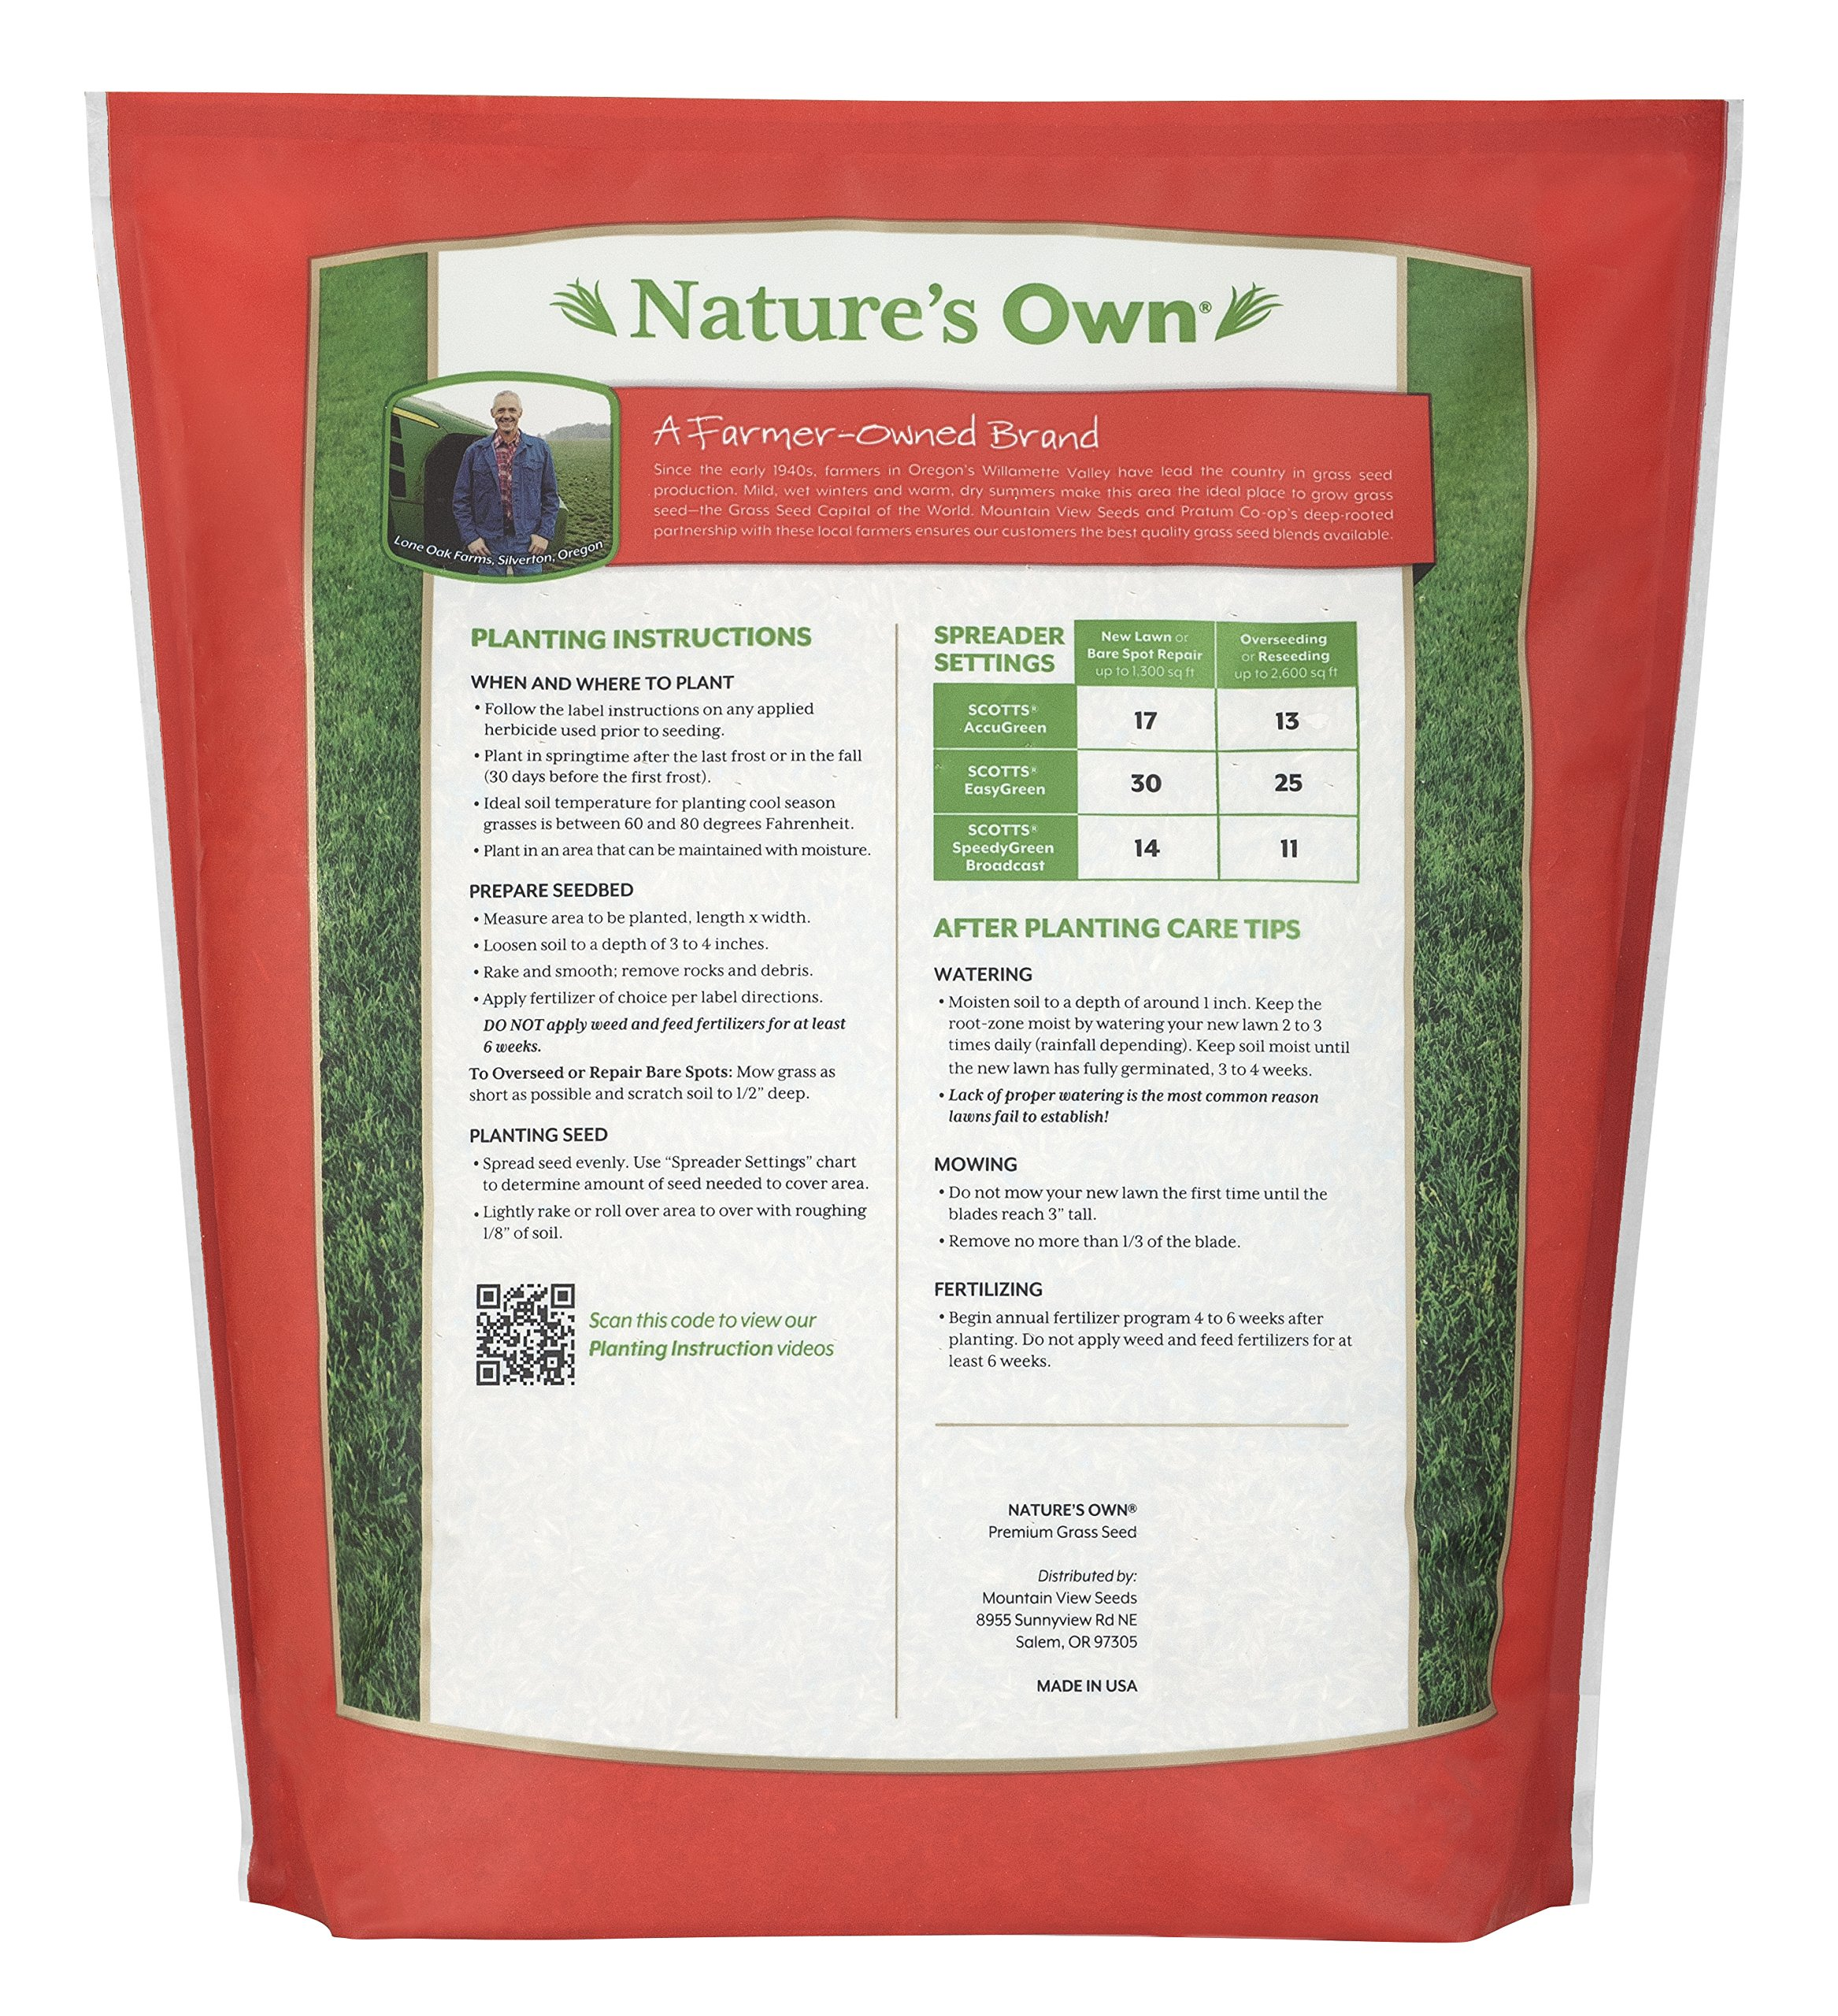 Mountain View Seeds Natures Own Sun & Shade Mix Grass Seed, 8-pounds by Mountain View Seed (Image #2)